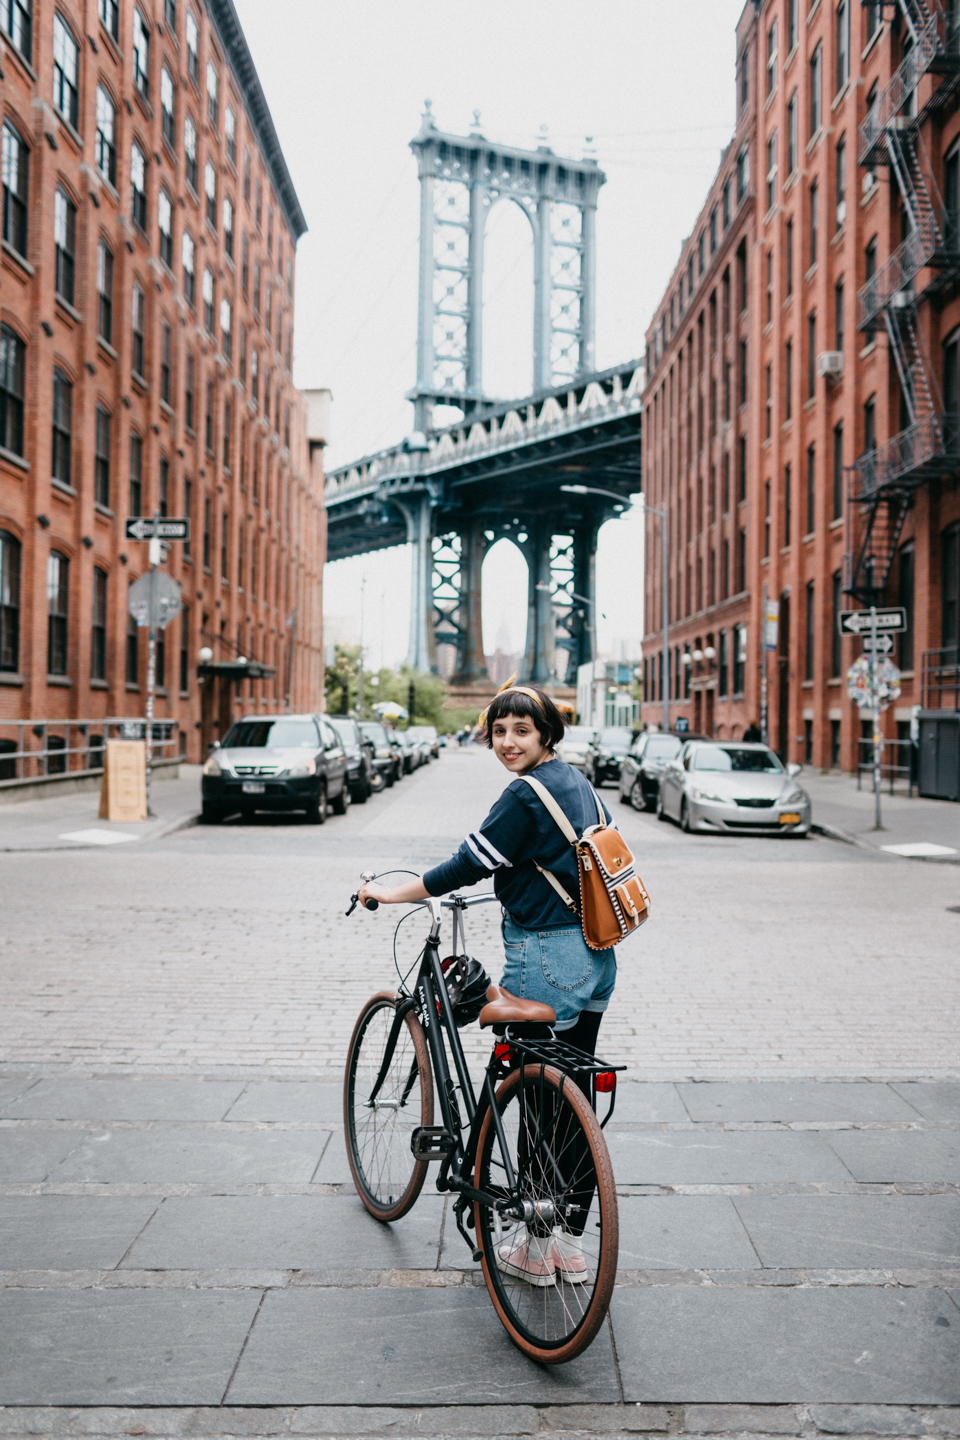 NYC: Bikes in DUMBO